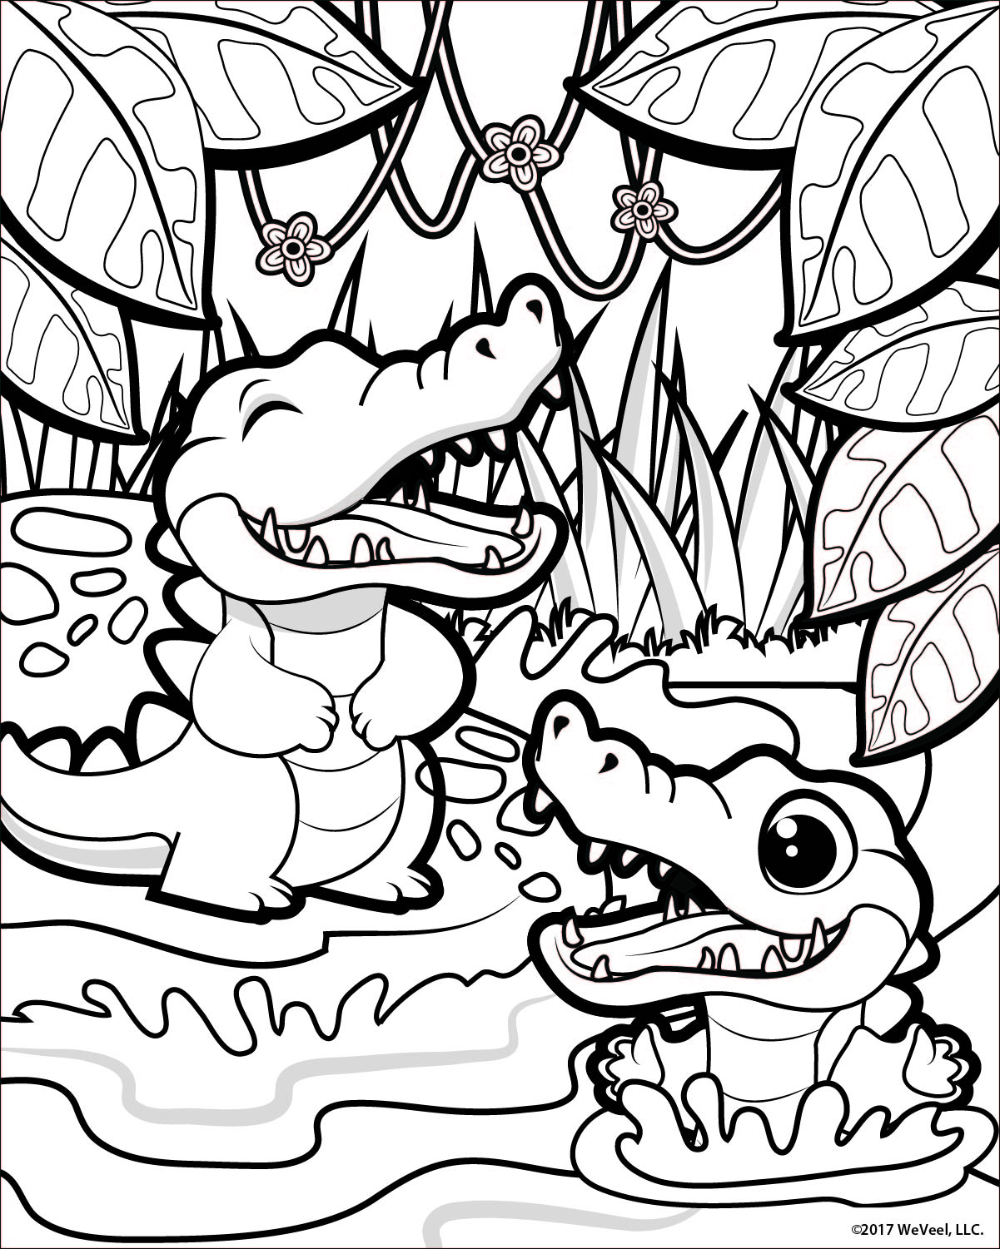 Coloring Pages Jungle In 2020 Jungle Coloring Pages Zoo Coloring Pages Cute Coloring Pages [ 1249 x 1000 Pixel ]